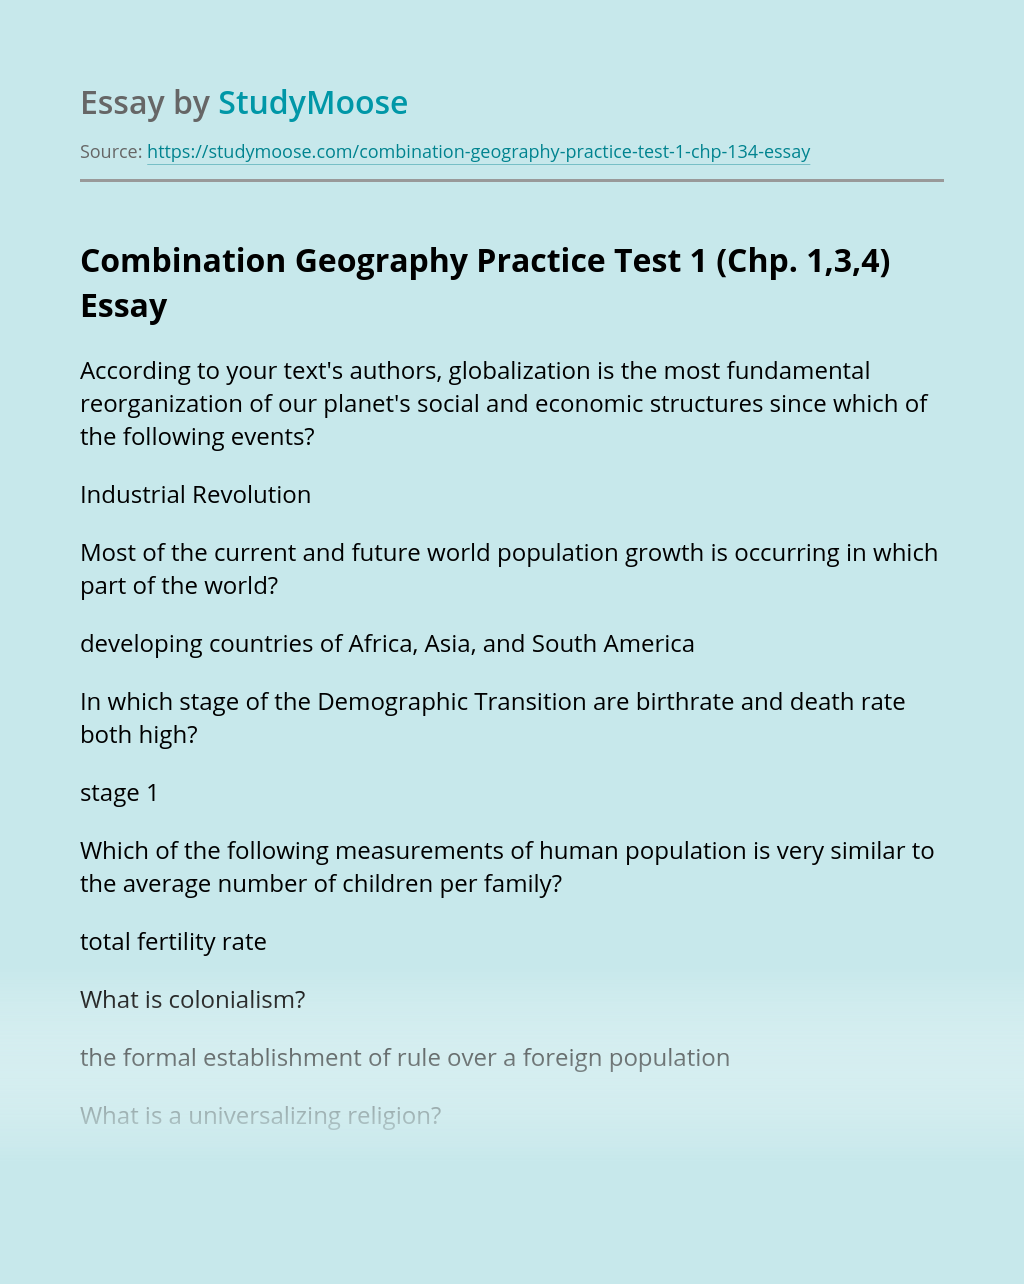 Combination Geography Practice Test 1 (Chp. 1,3,4)